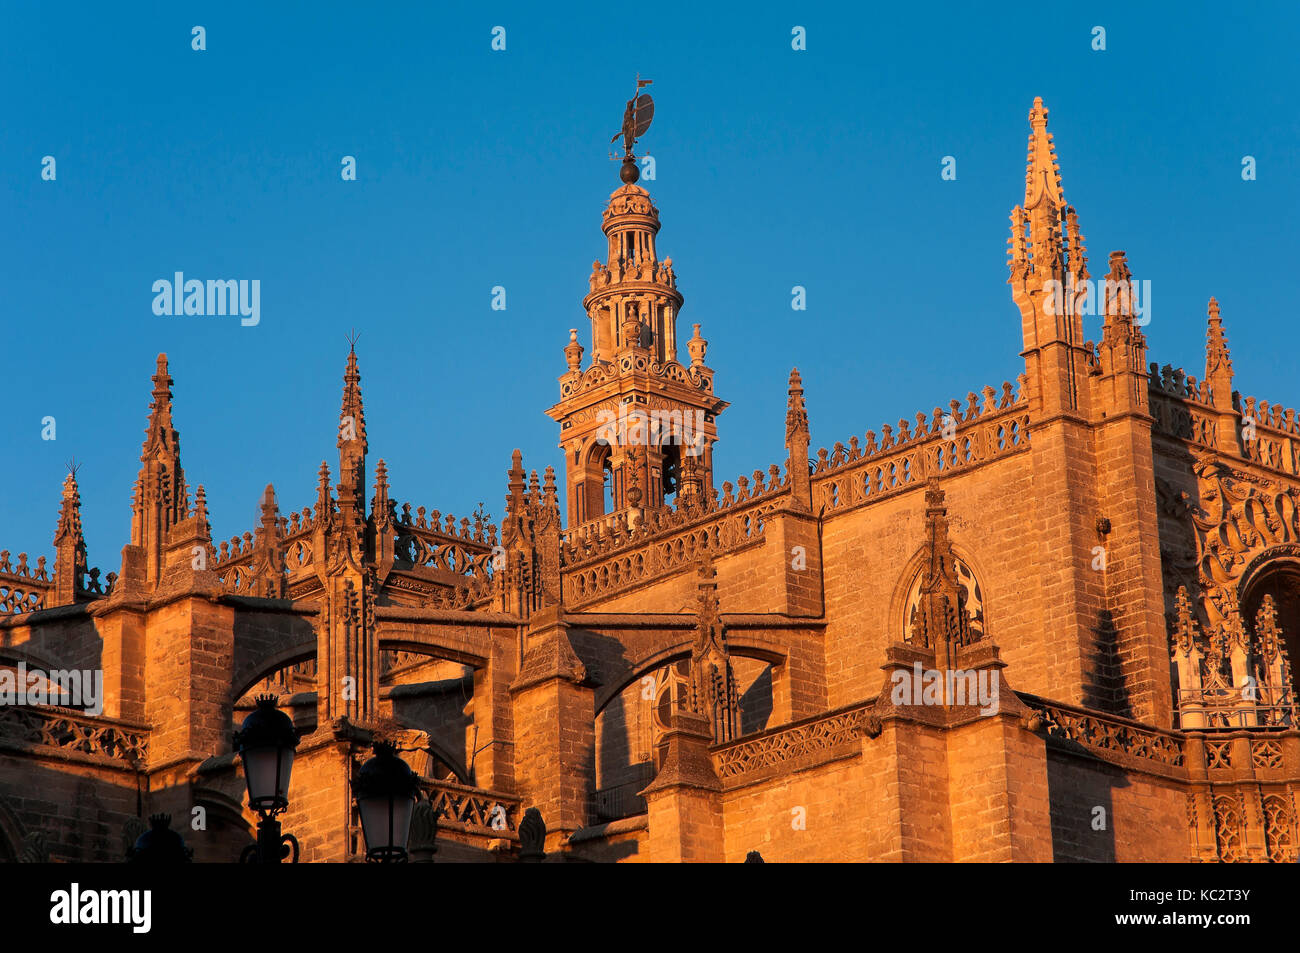 Cathedral and Giralda tower, Seville, Region of Andalusia, Spain, Europe - Stock Image